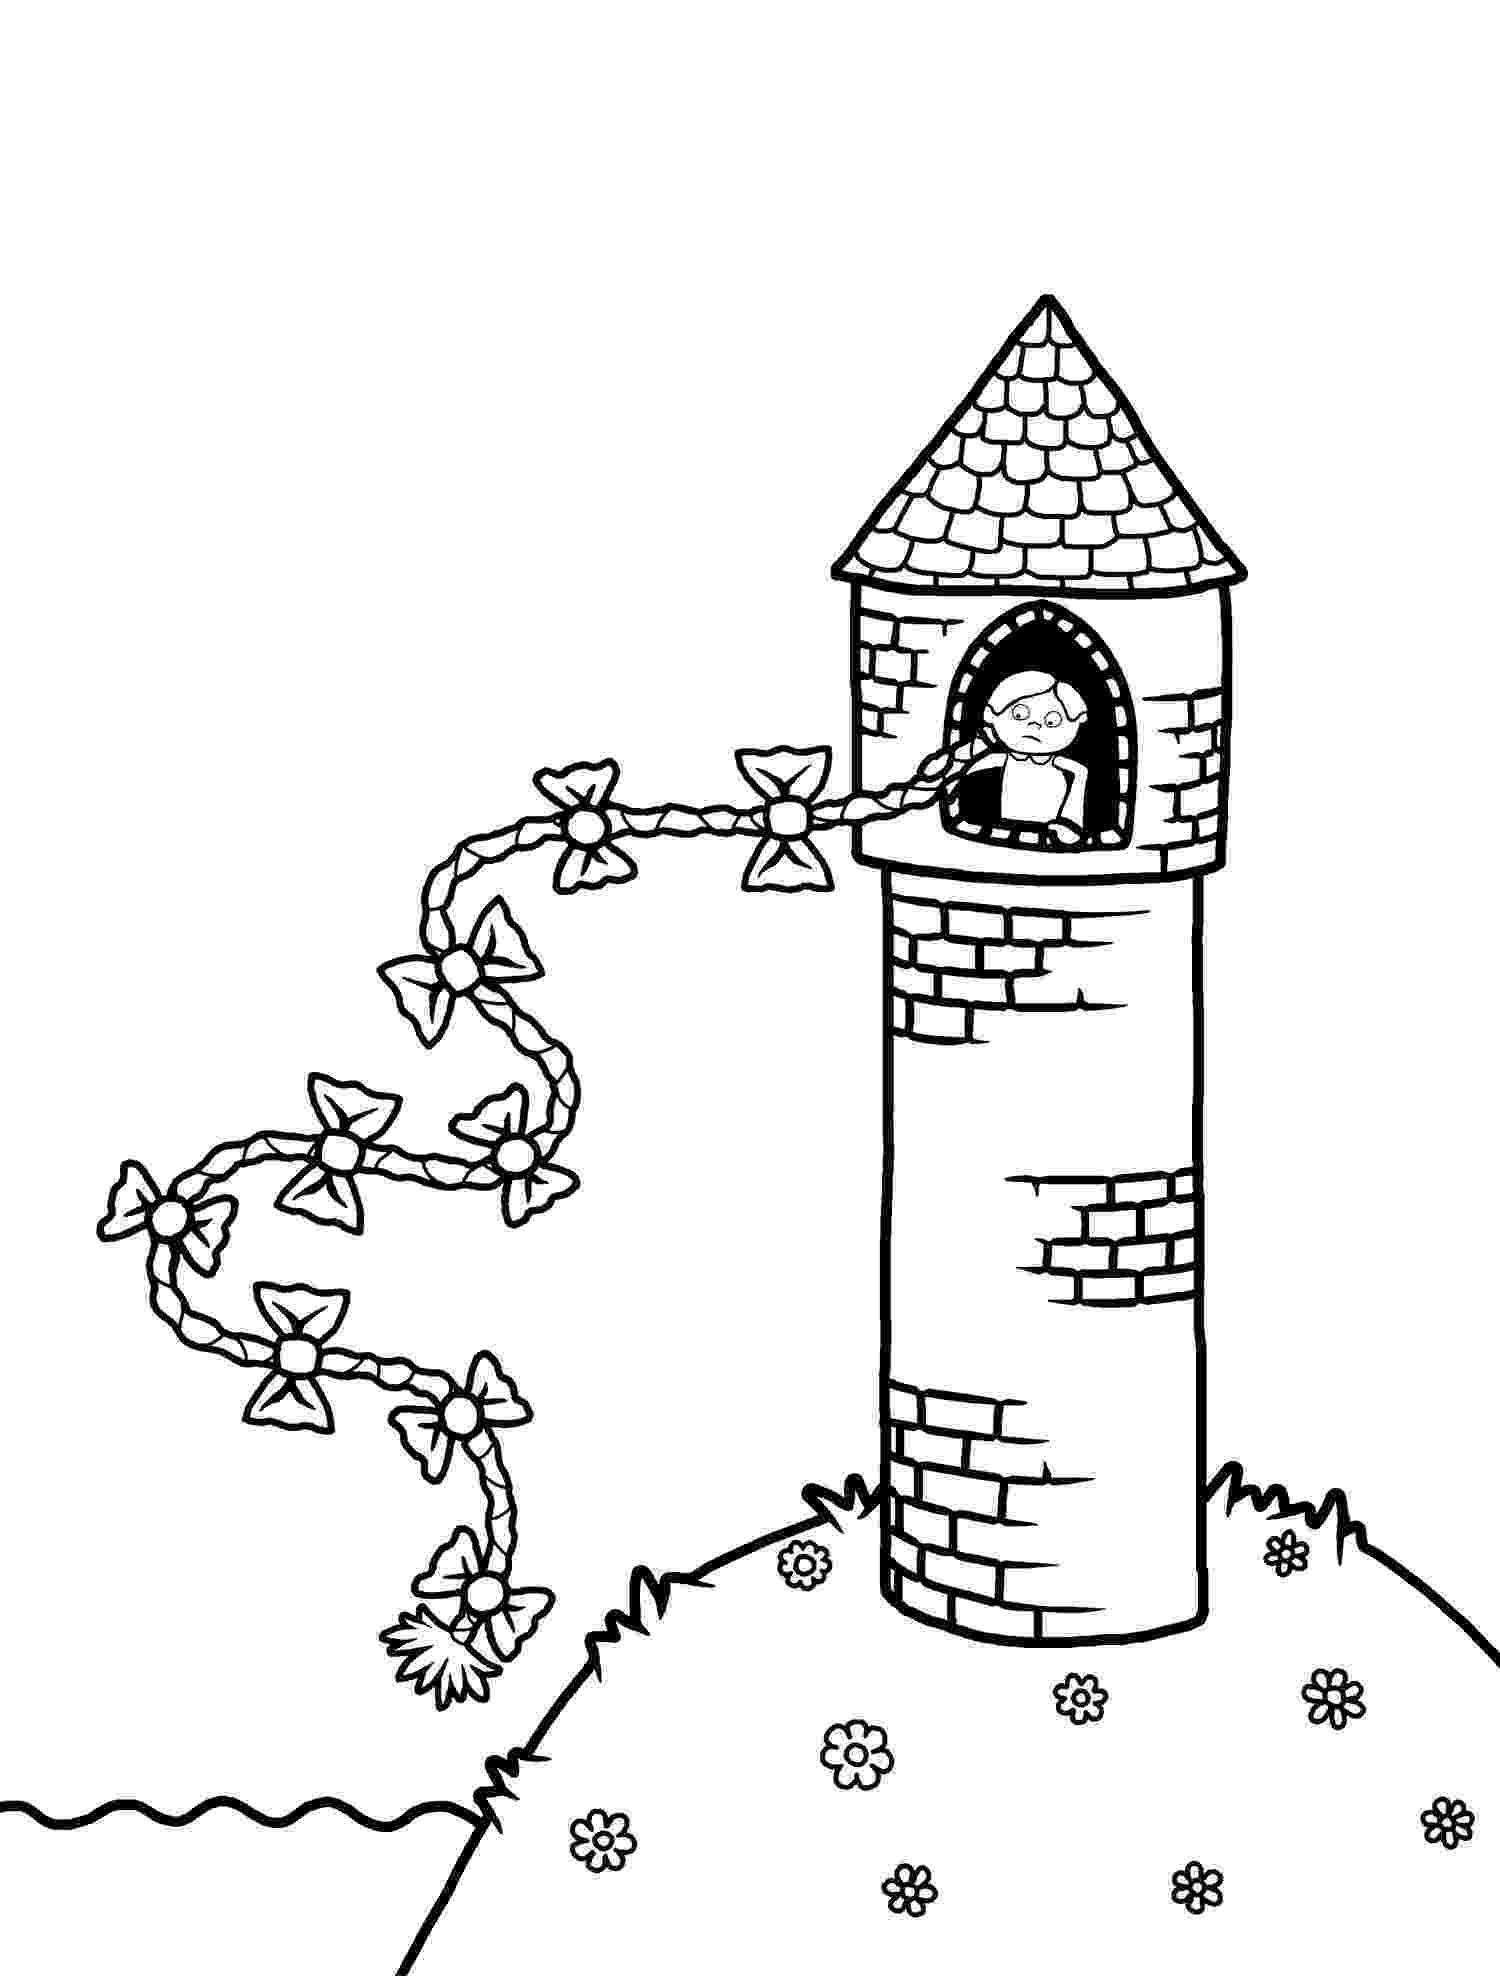 rapunzel pictures to print and colour 170 free tangled coloring pages may 2020 rapunzel to rapunzel print pictures and colour